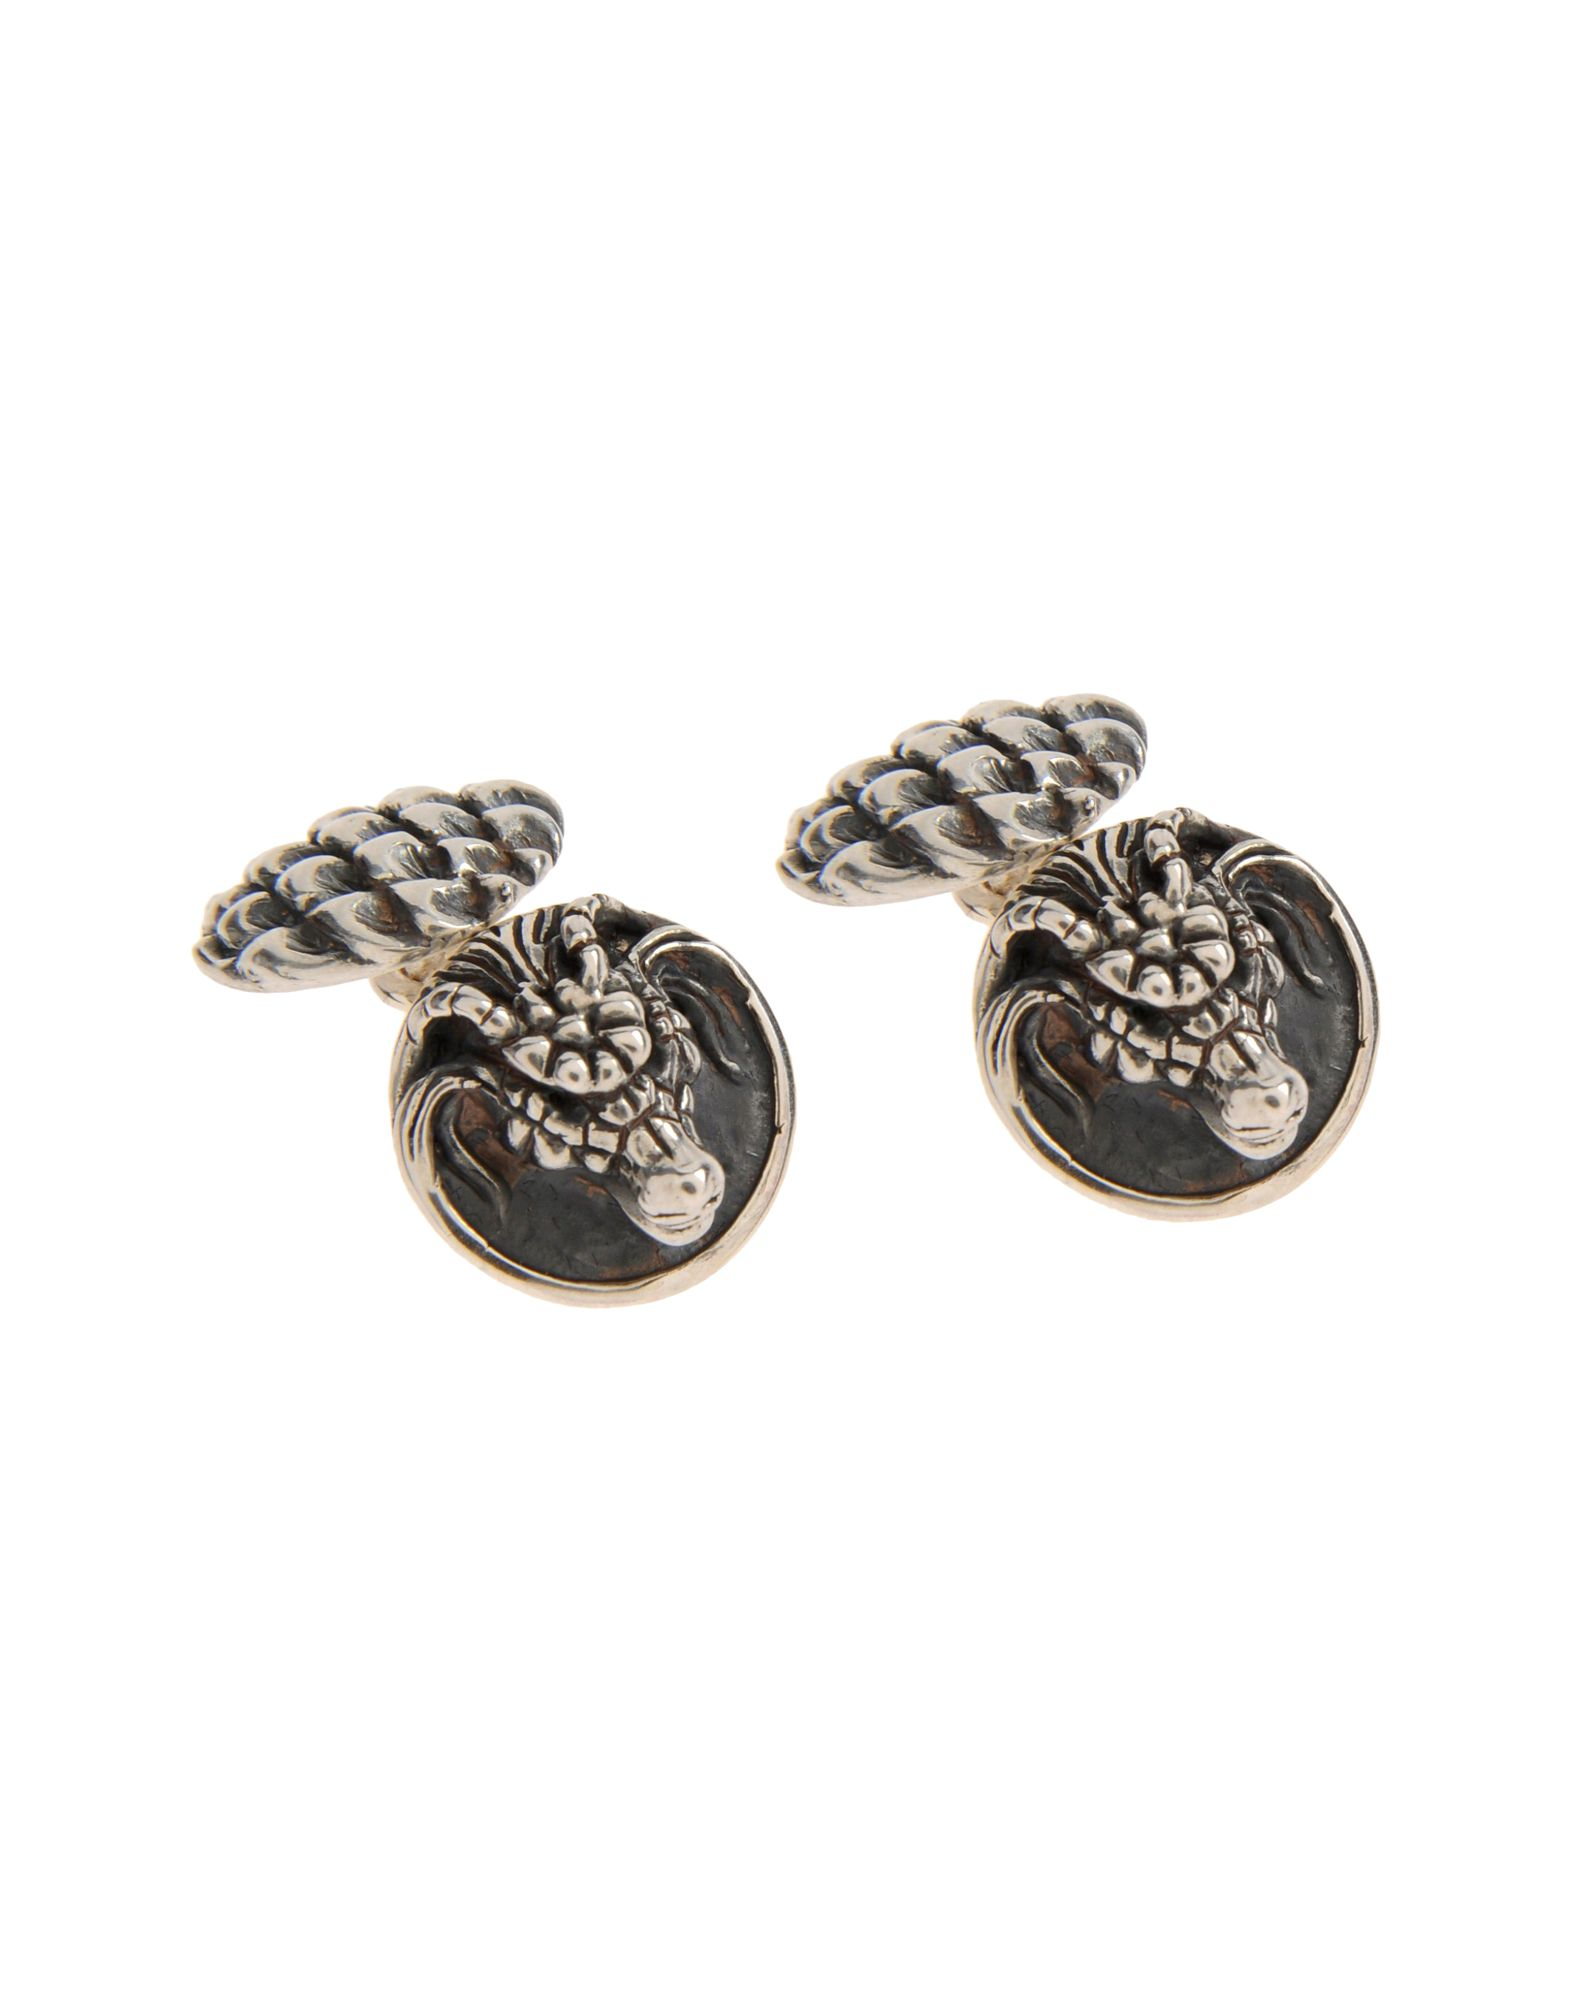 Cufflinks And Tie Clips in Silver